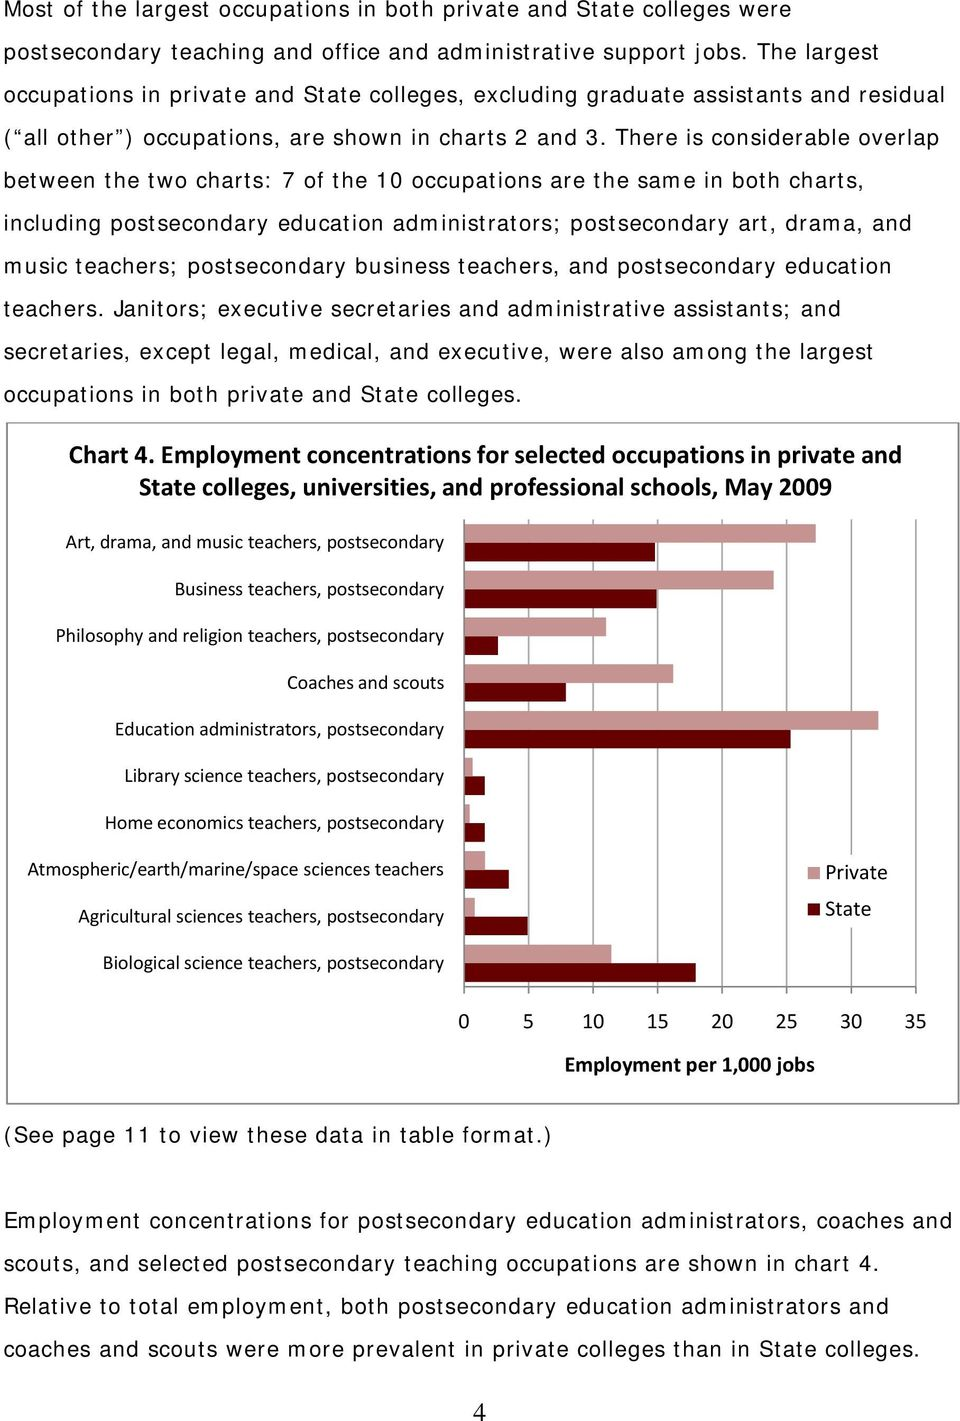 There is considerable overlap between the two charts: 7 of the 10 occupations are the same in both charts, including education administrators; art, drama, and music teachers; business teachers, and